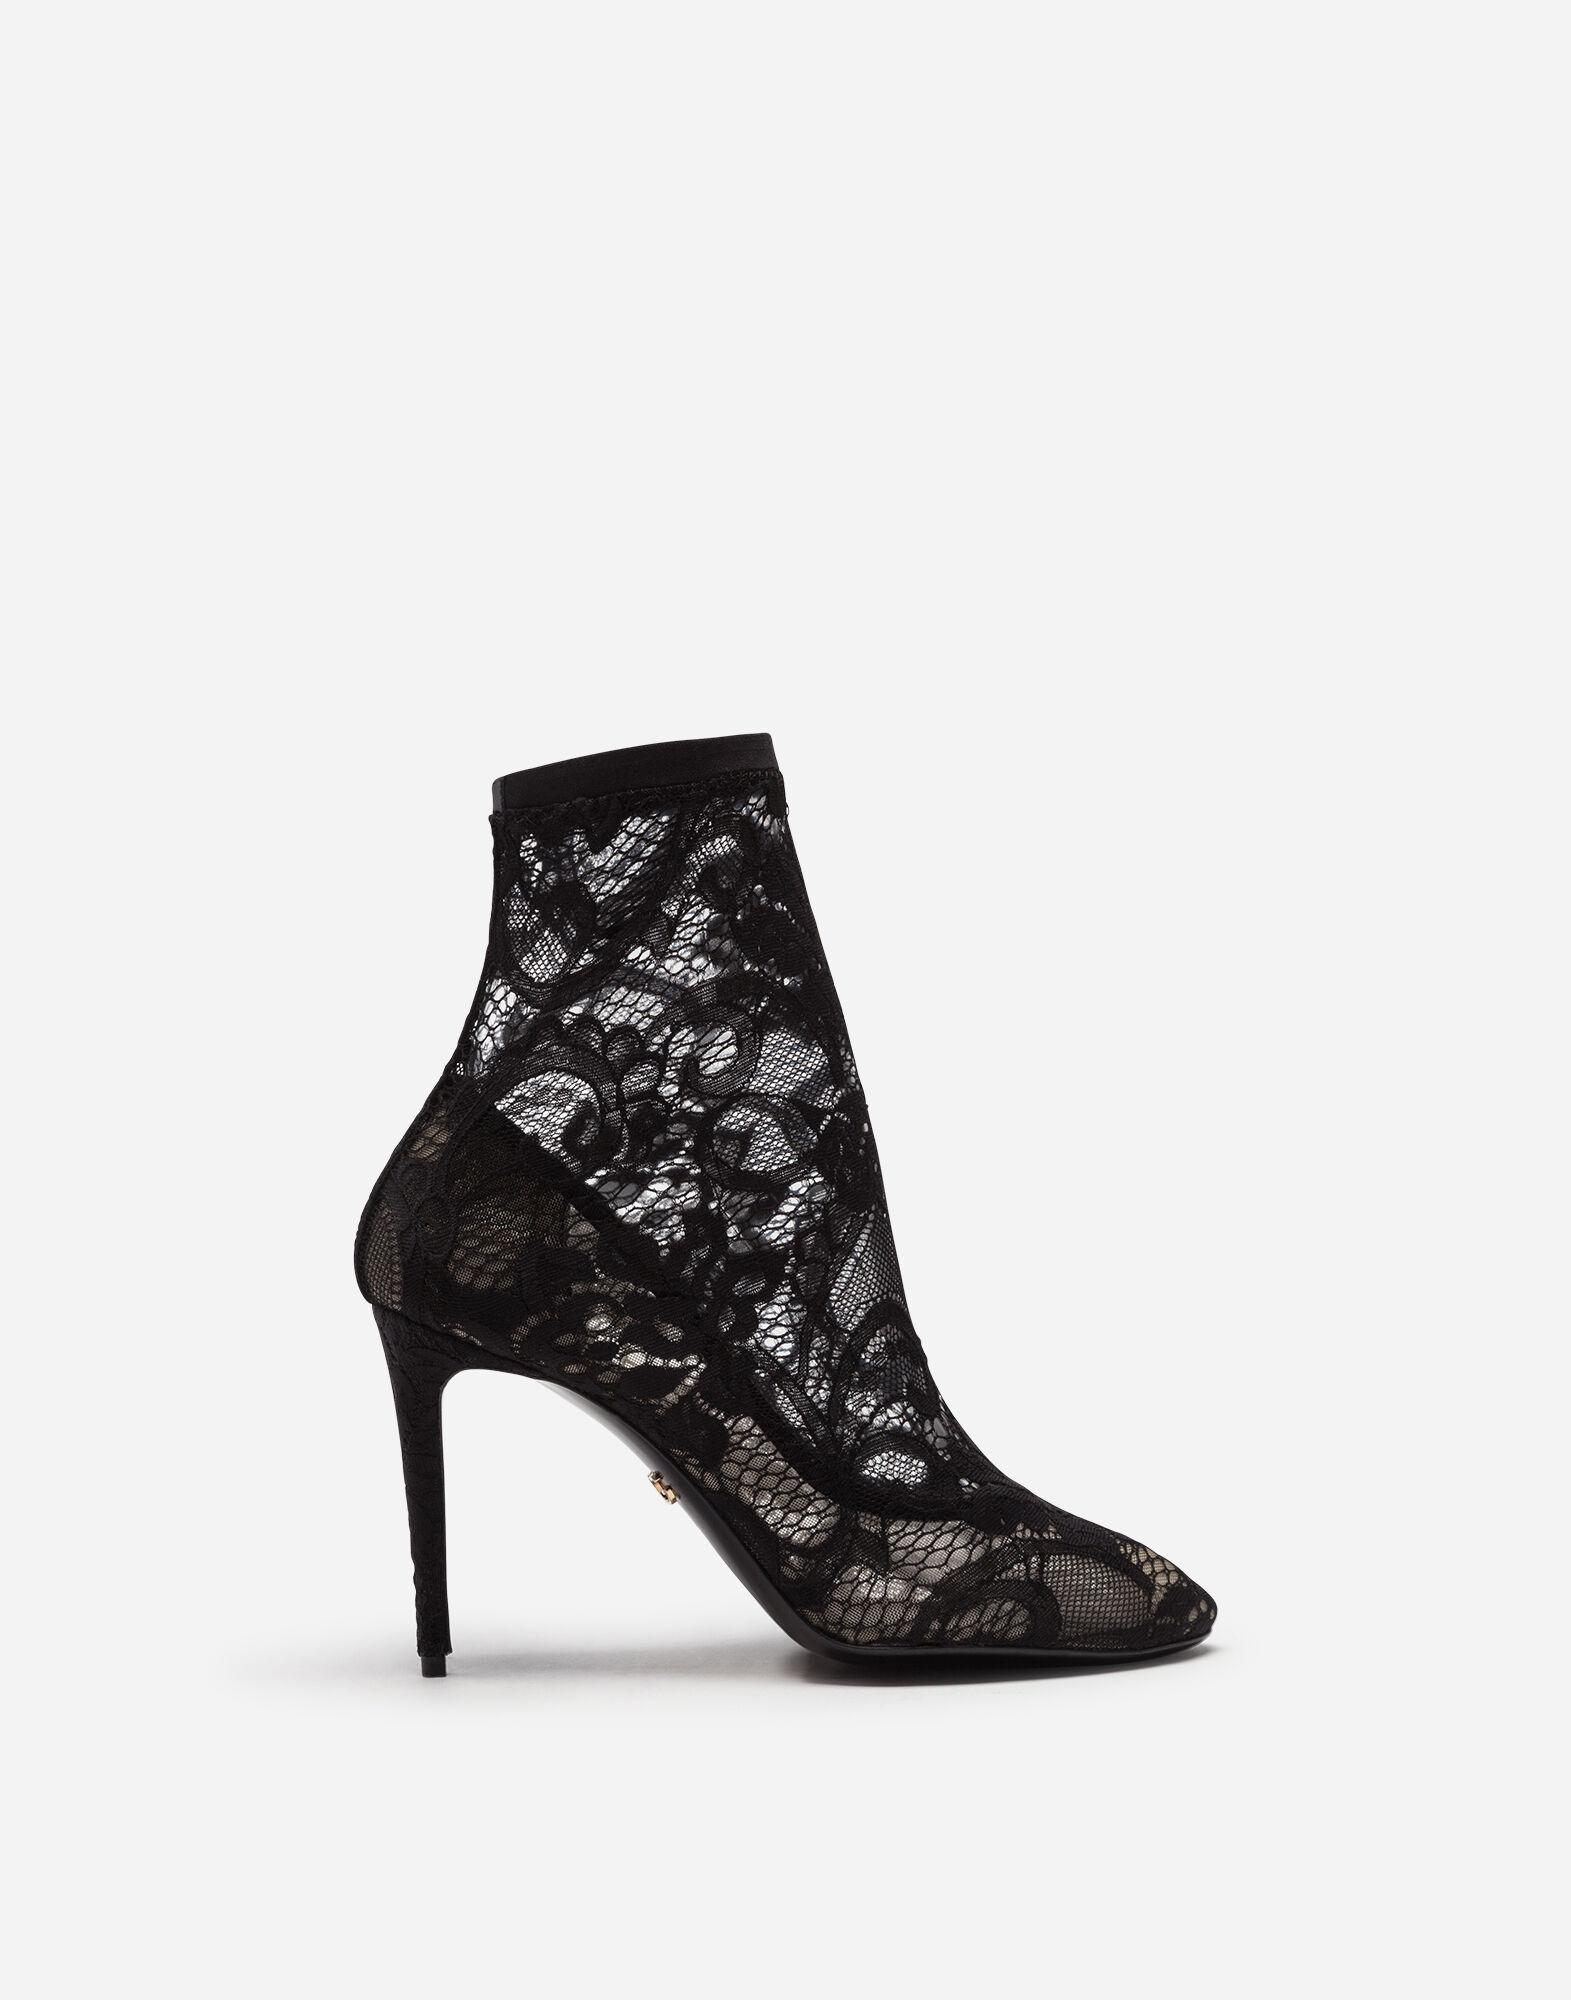 Stretch lace and gros grain Bette booties